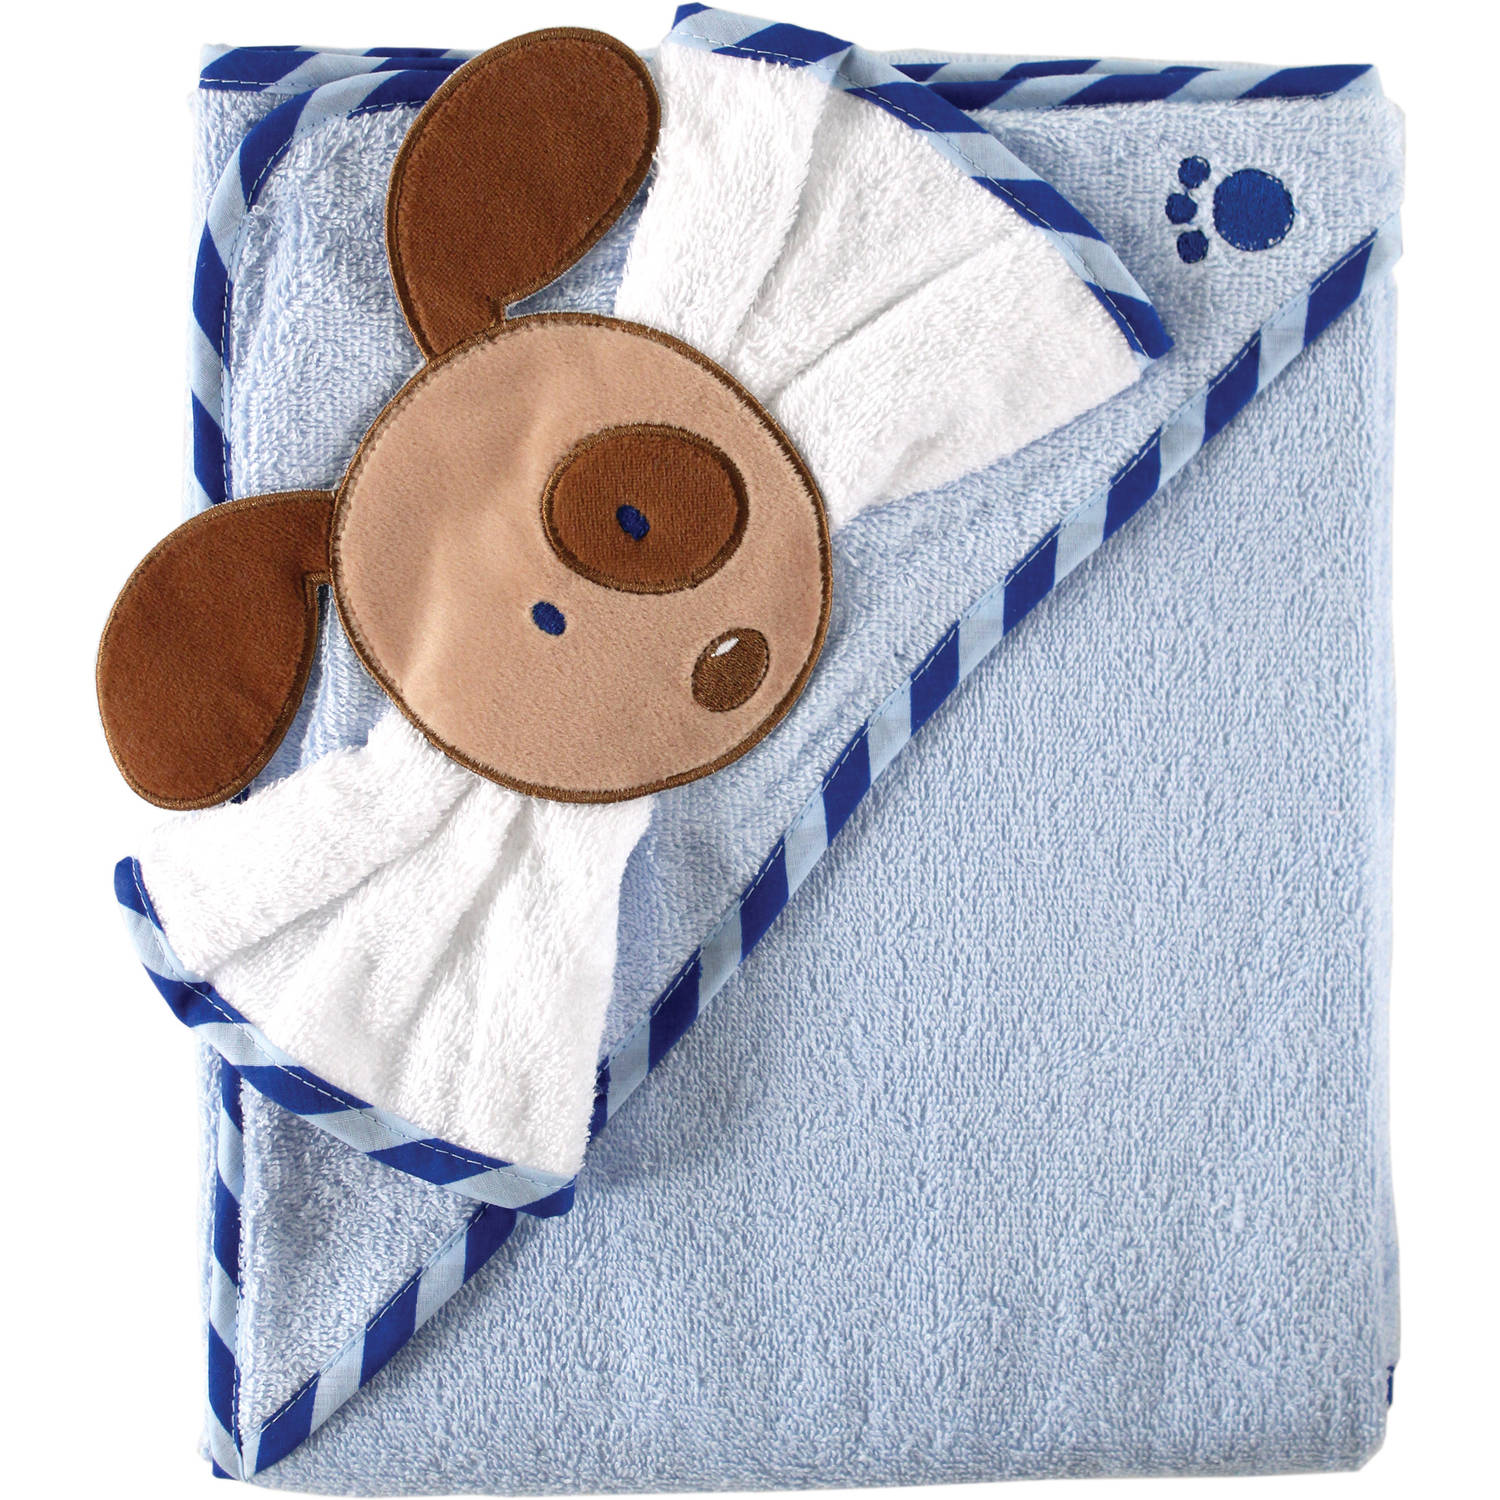 Luvable Friends Baby Woven Hooded Towel with Washcloth, Blue by Babyvision, Inc.